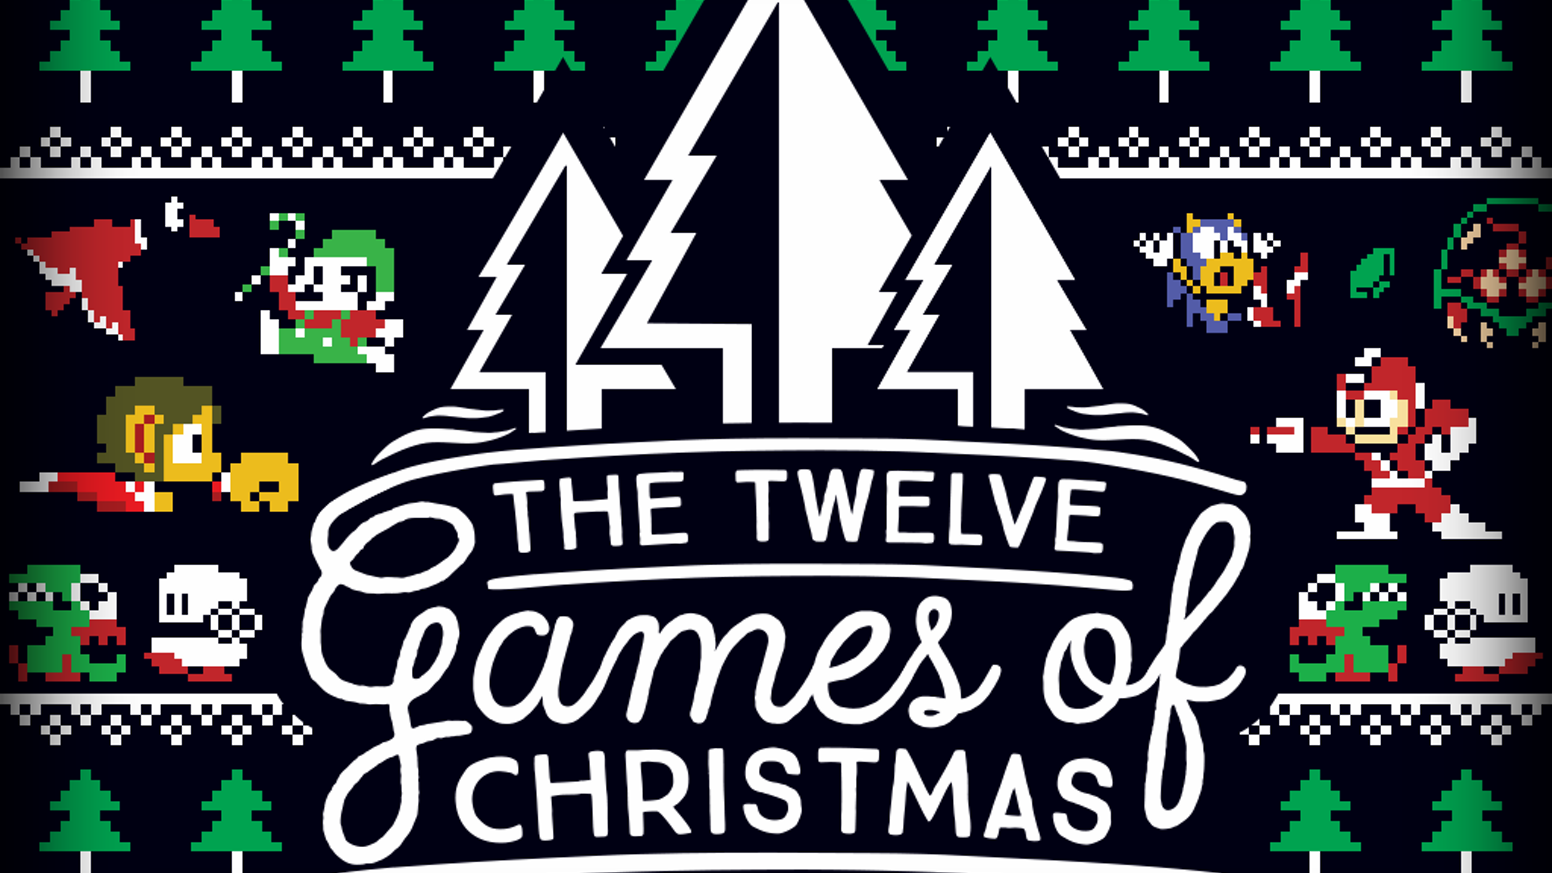 12 Games Of Christmas Christmas Cards Shirts More By Matt Aka